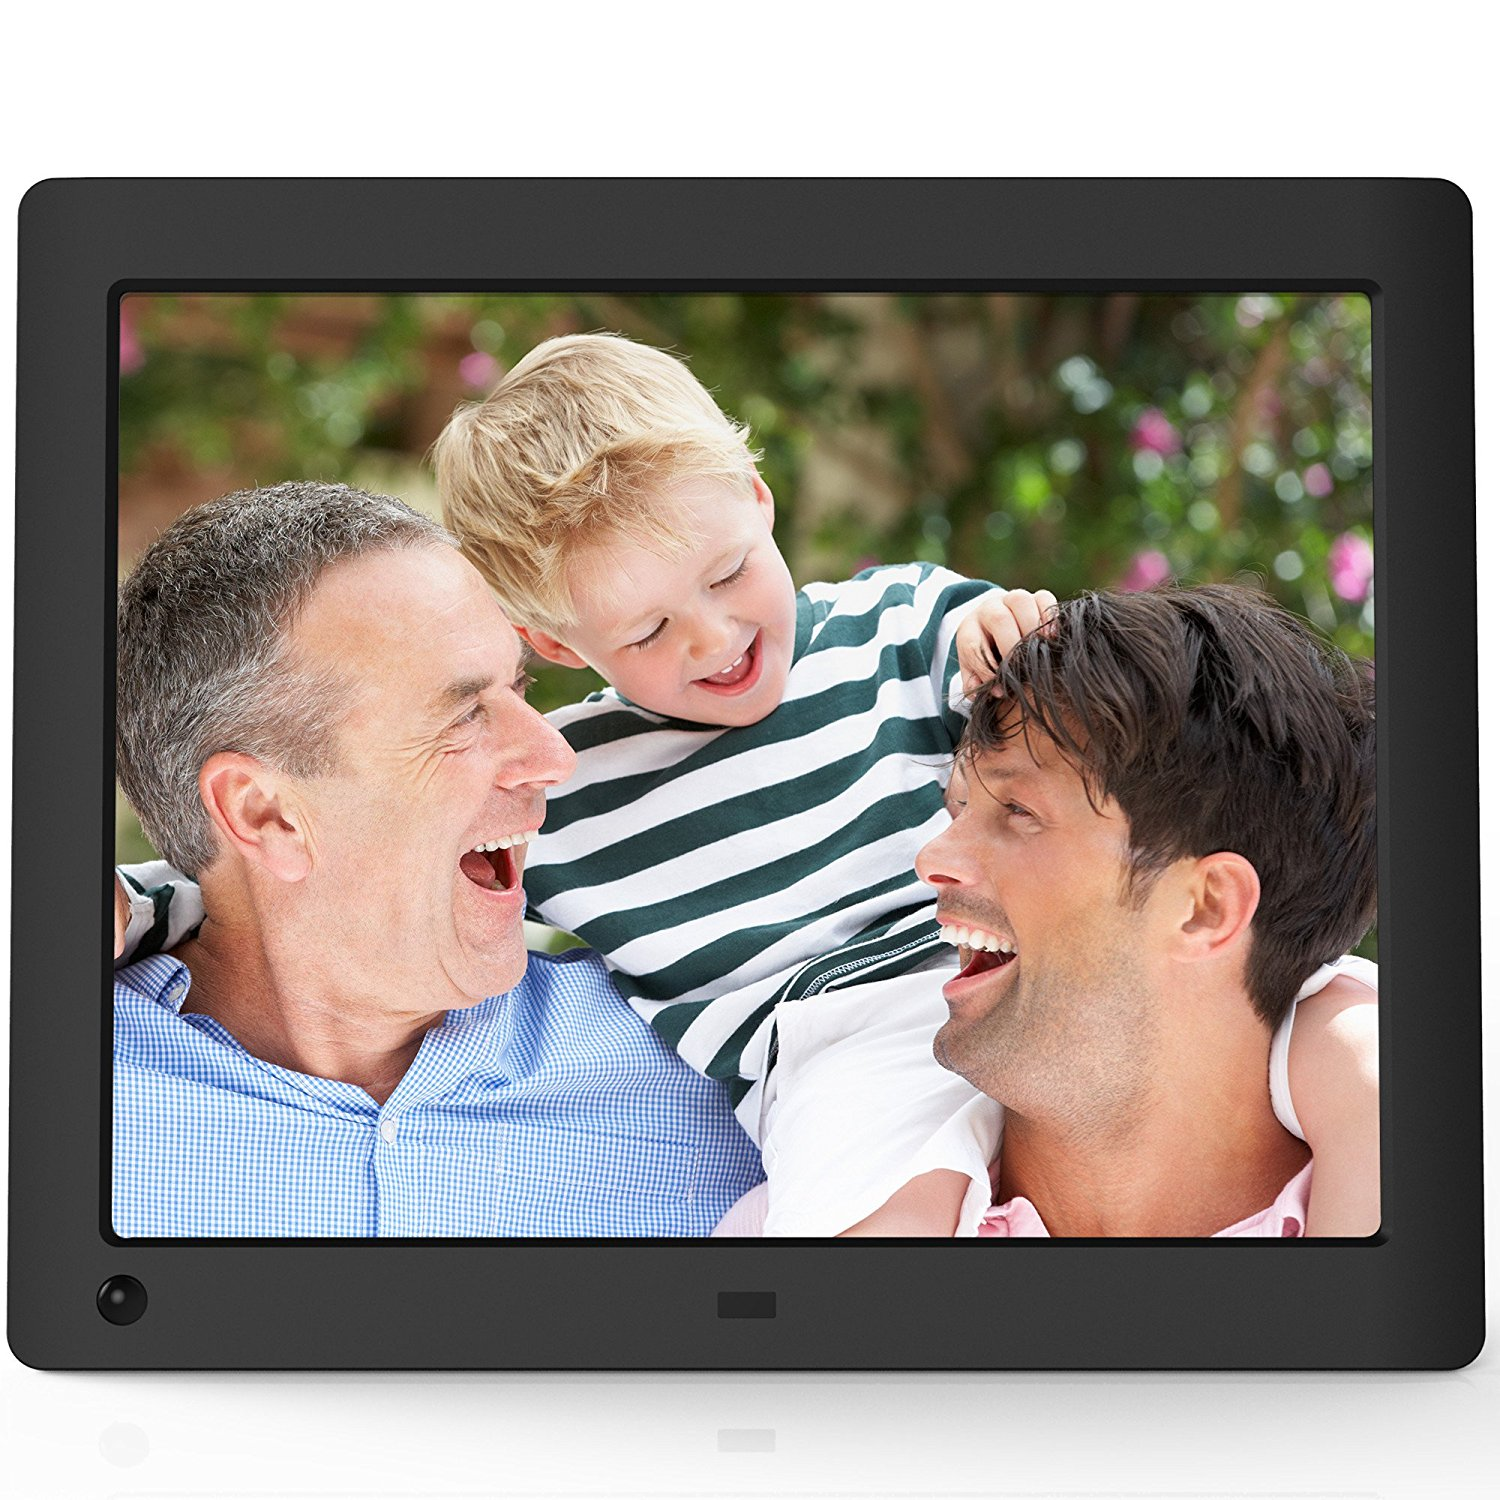 NIX Advance 8 inch Digital Photo & HD Video Frame (X08E) - Walmart.com